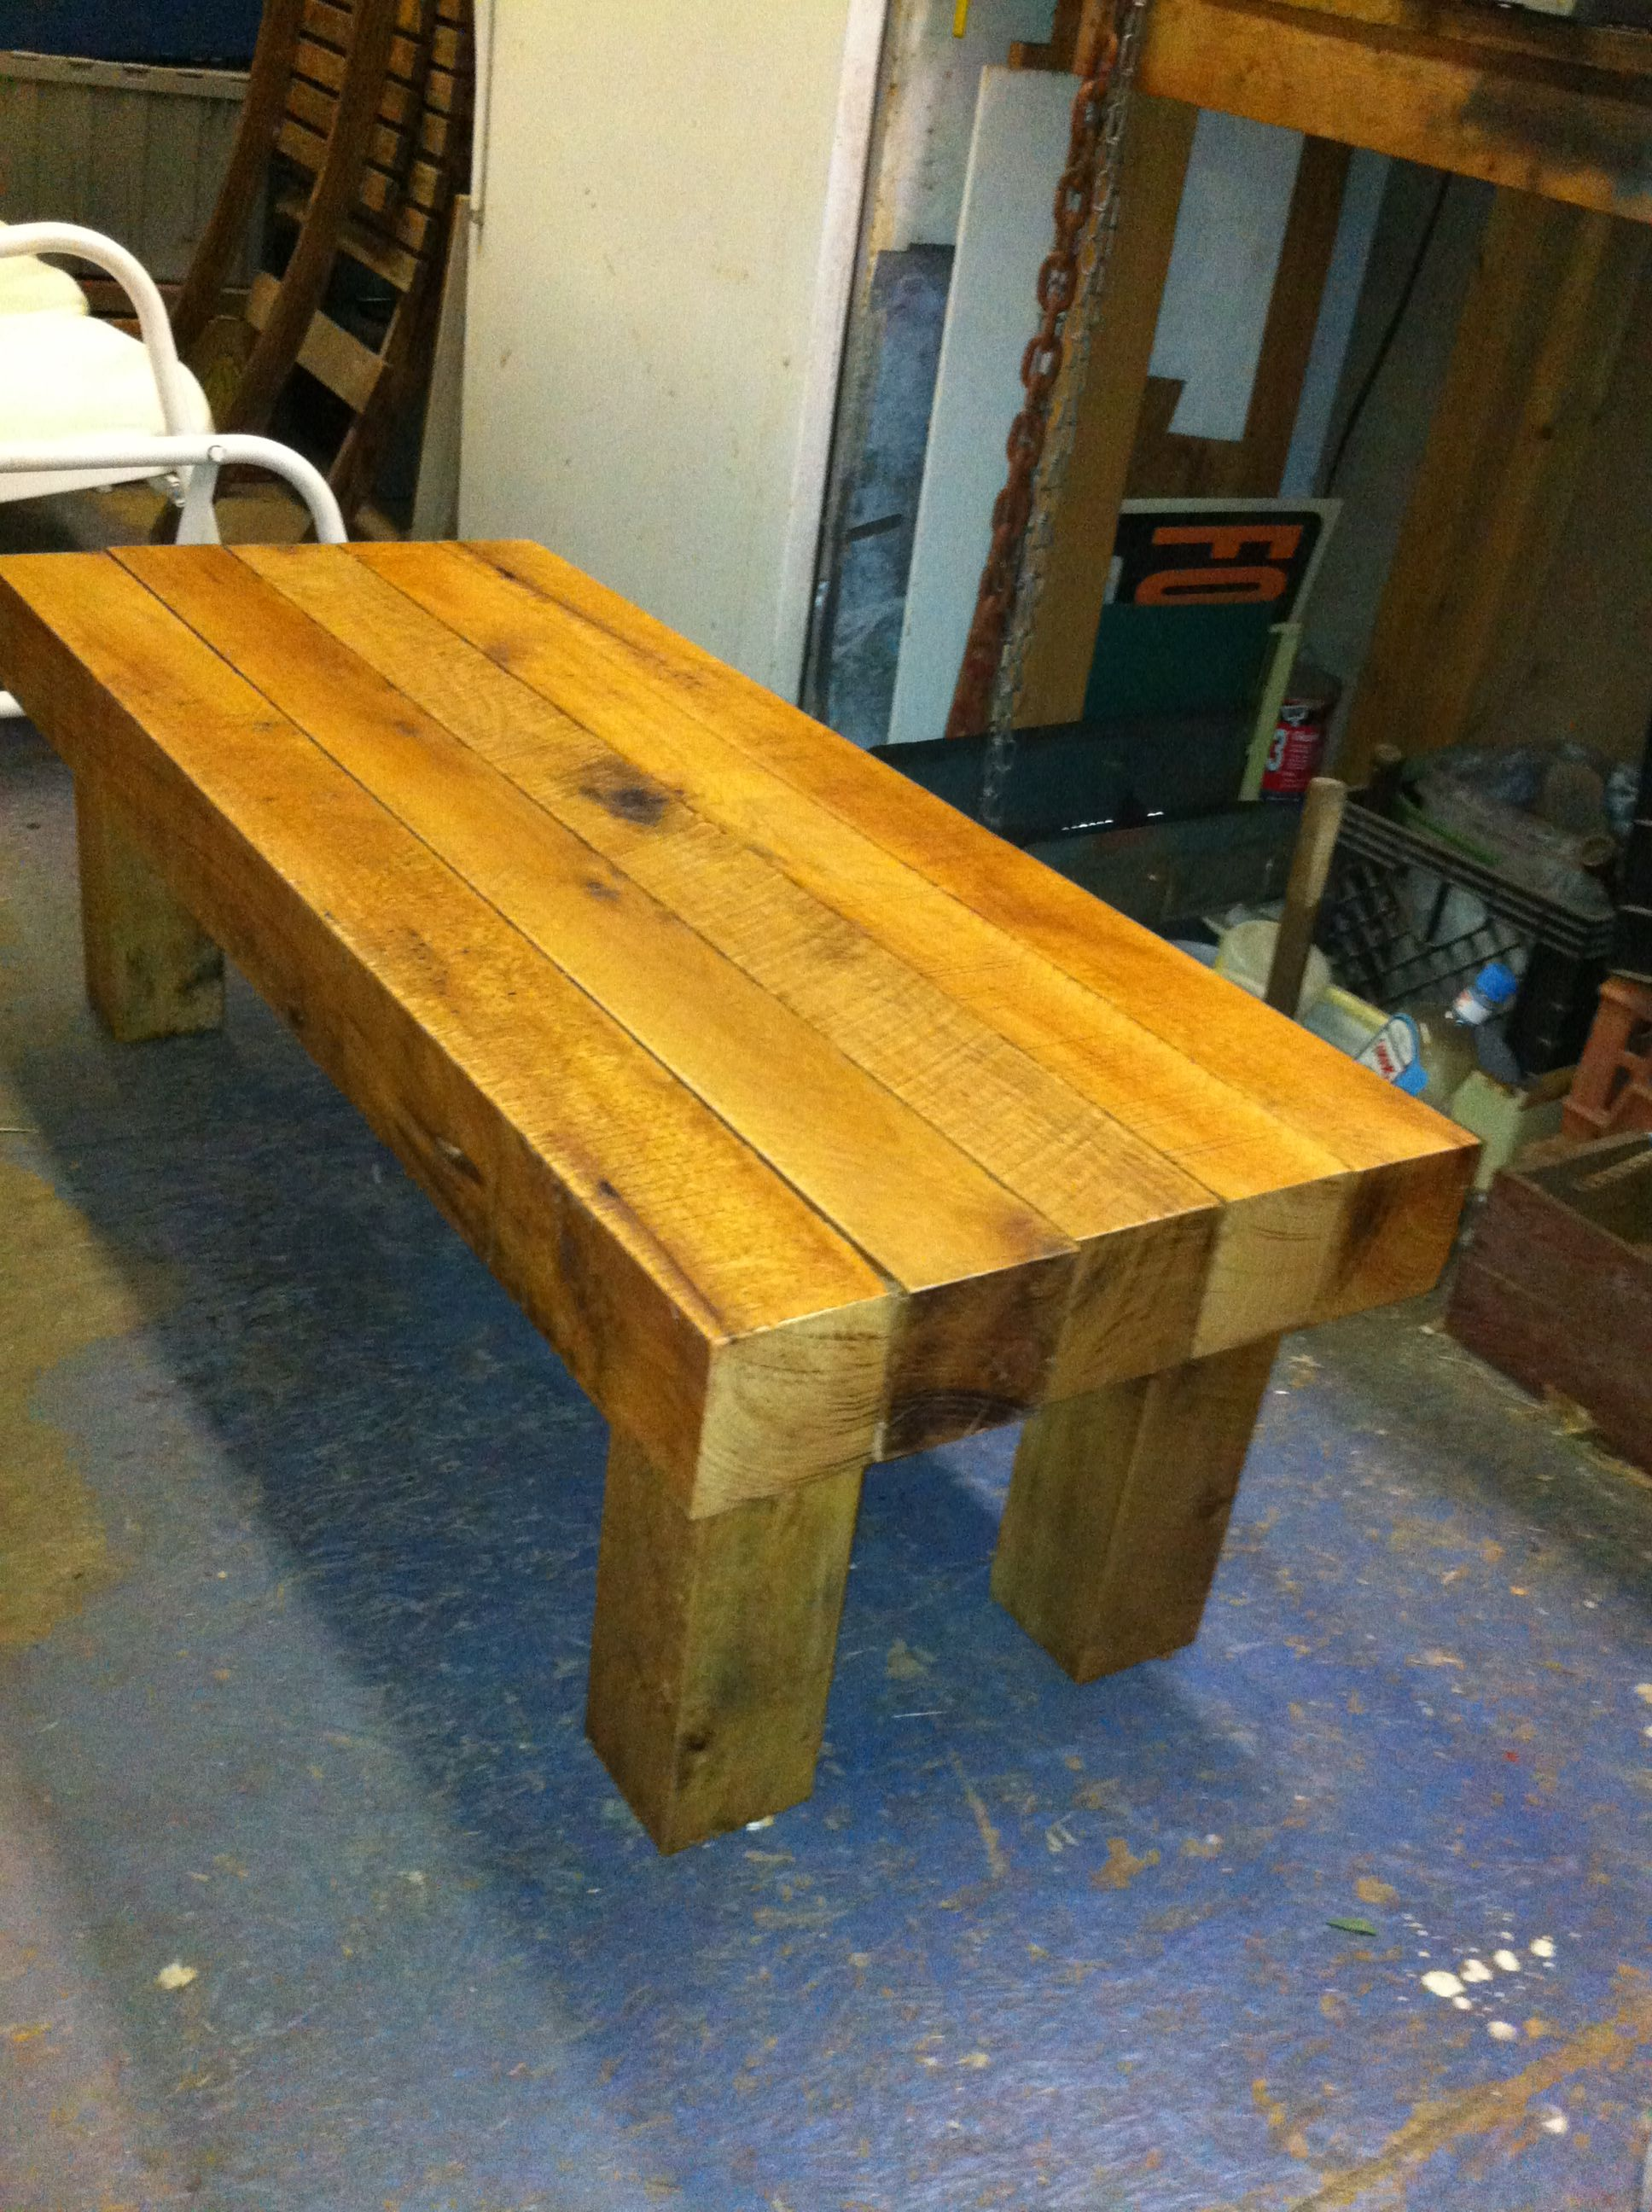 4x4 coffee table scrap wood 4x4 coffee table scrap wood for Coffee tables 4x4